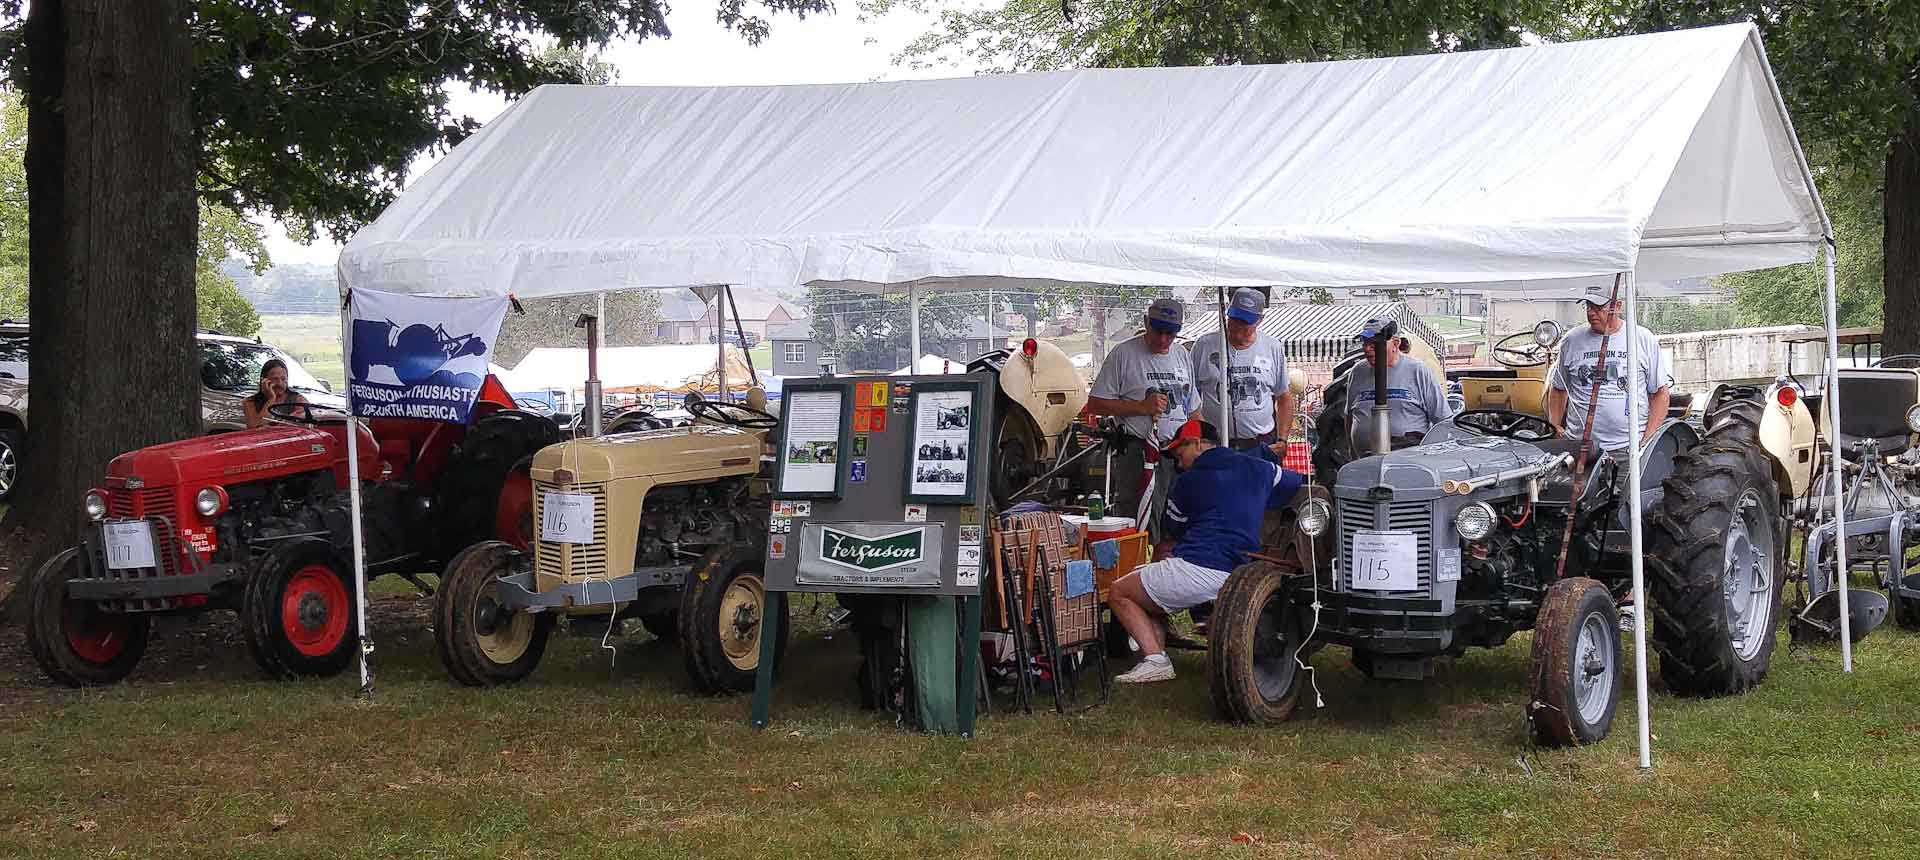 The Sprague's tent with their tractors. The one on the right had hand controls added and place to put crutches. Hand controls outfitted for their father Paul Jr. who had polio.